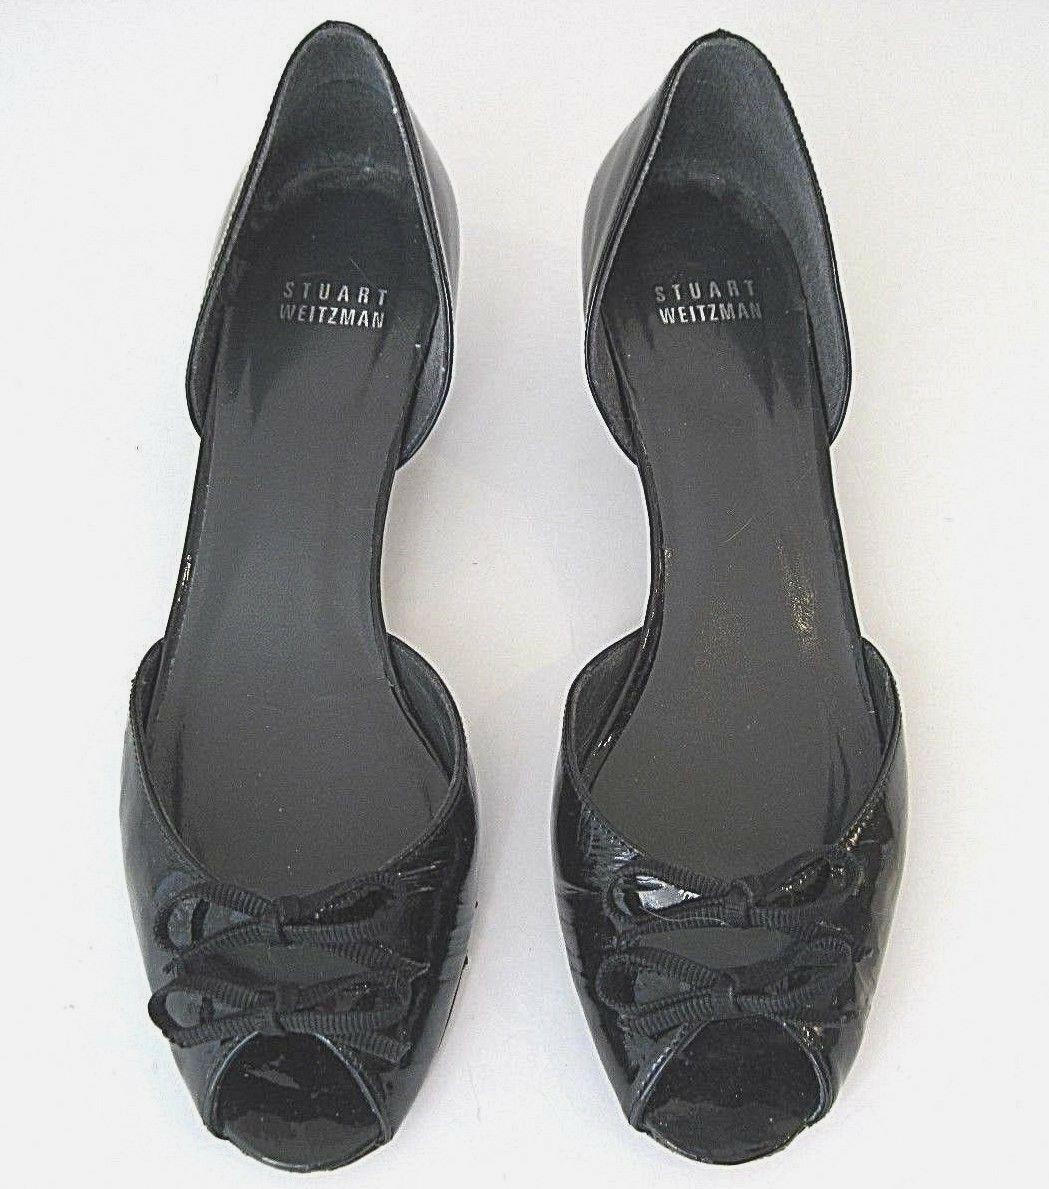 STUART HEEL WEITZMAN BLACK  PATENT LEATHER OPEN TOE KITTEN HEEL STUART Schuhe 7 1/2 N 00a164